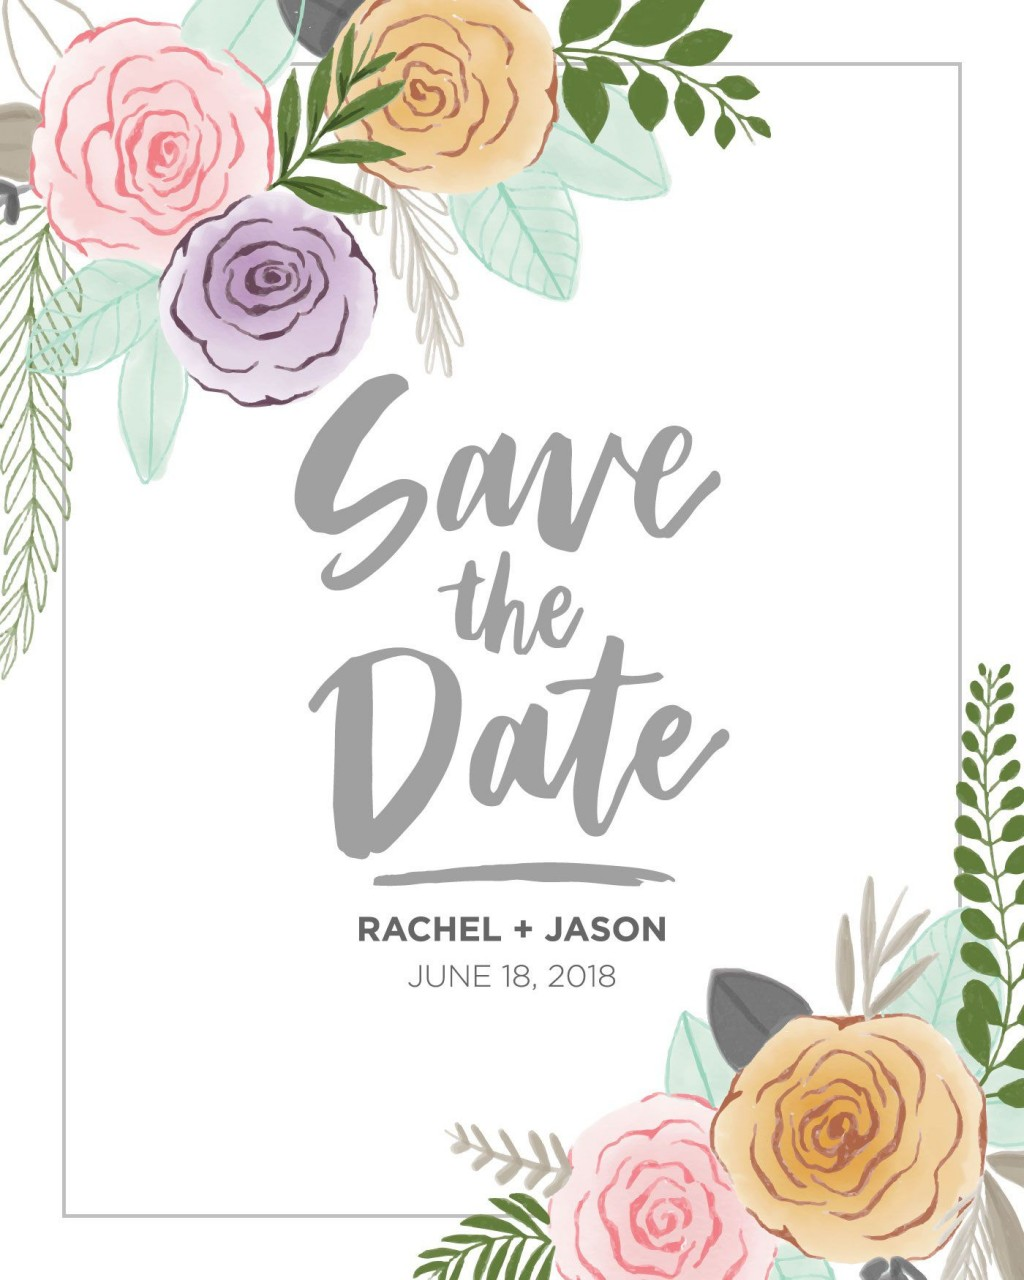 007 Breathtaking Save The Date Template Photoshop Sample  Adobe CardLarge